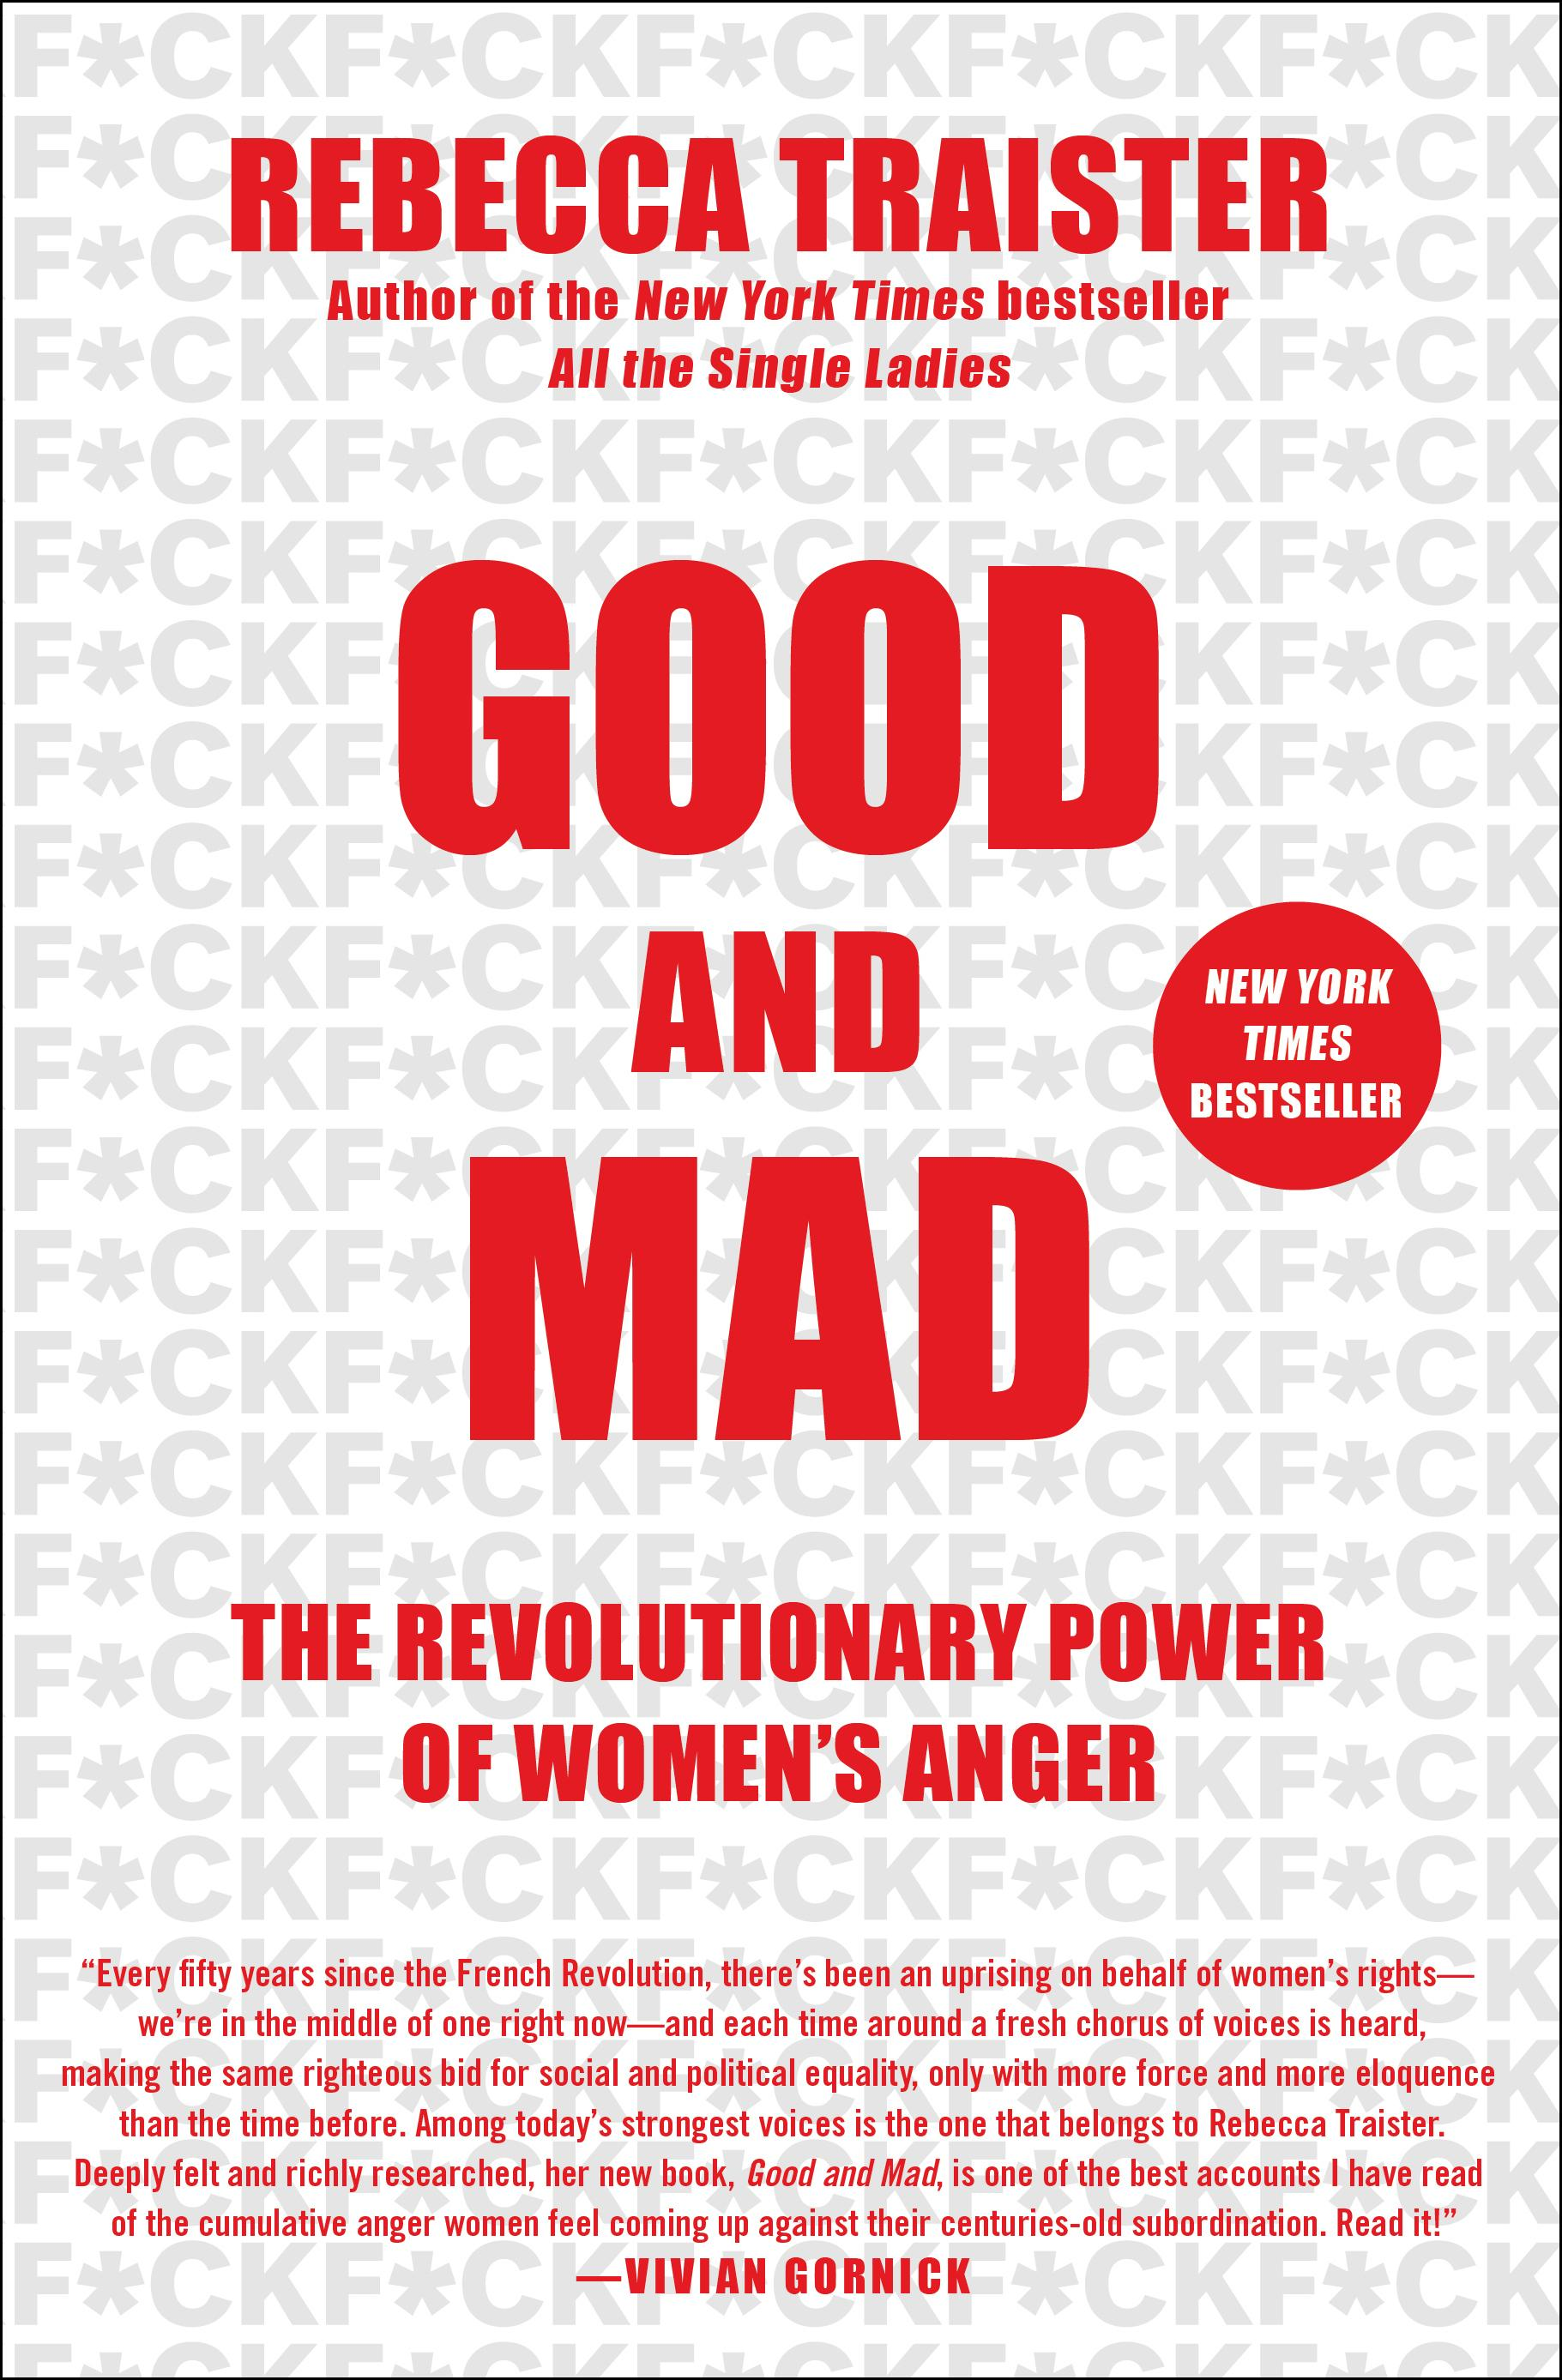 """Good and Mad: The Revolutionary Power of Women's Anger"" by Rebecca Traister (Image: Courtesy{ }Simon & Schuster){ }"